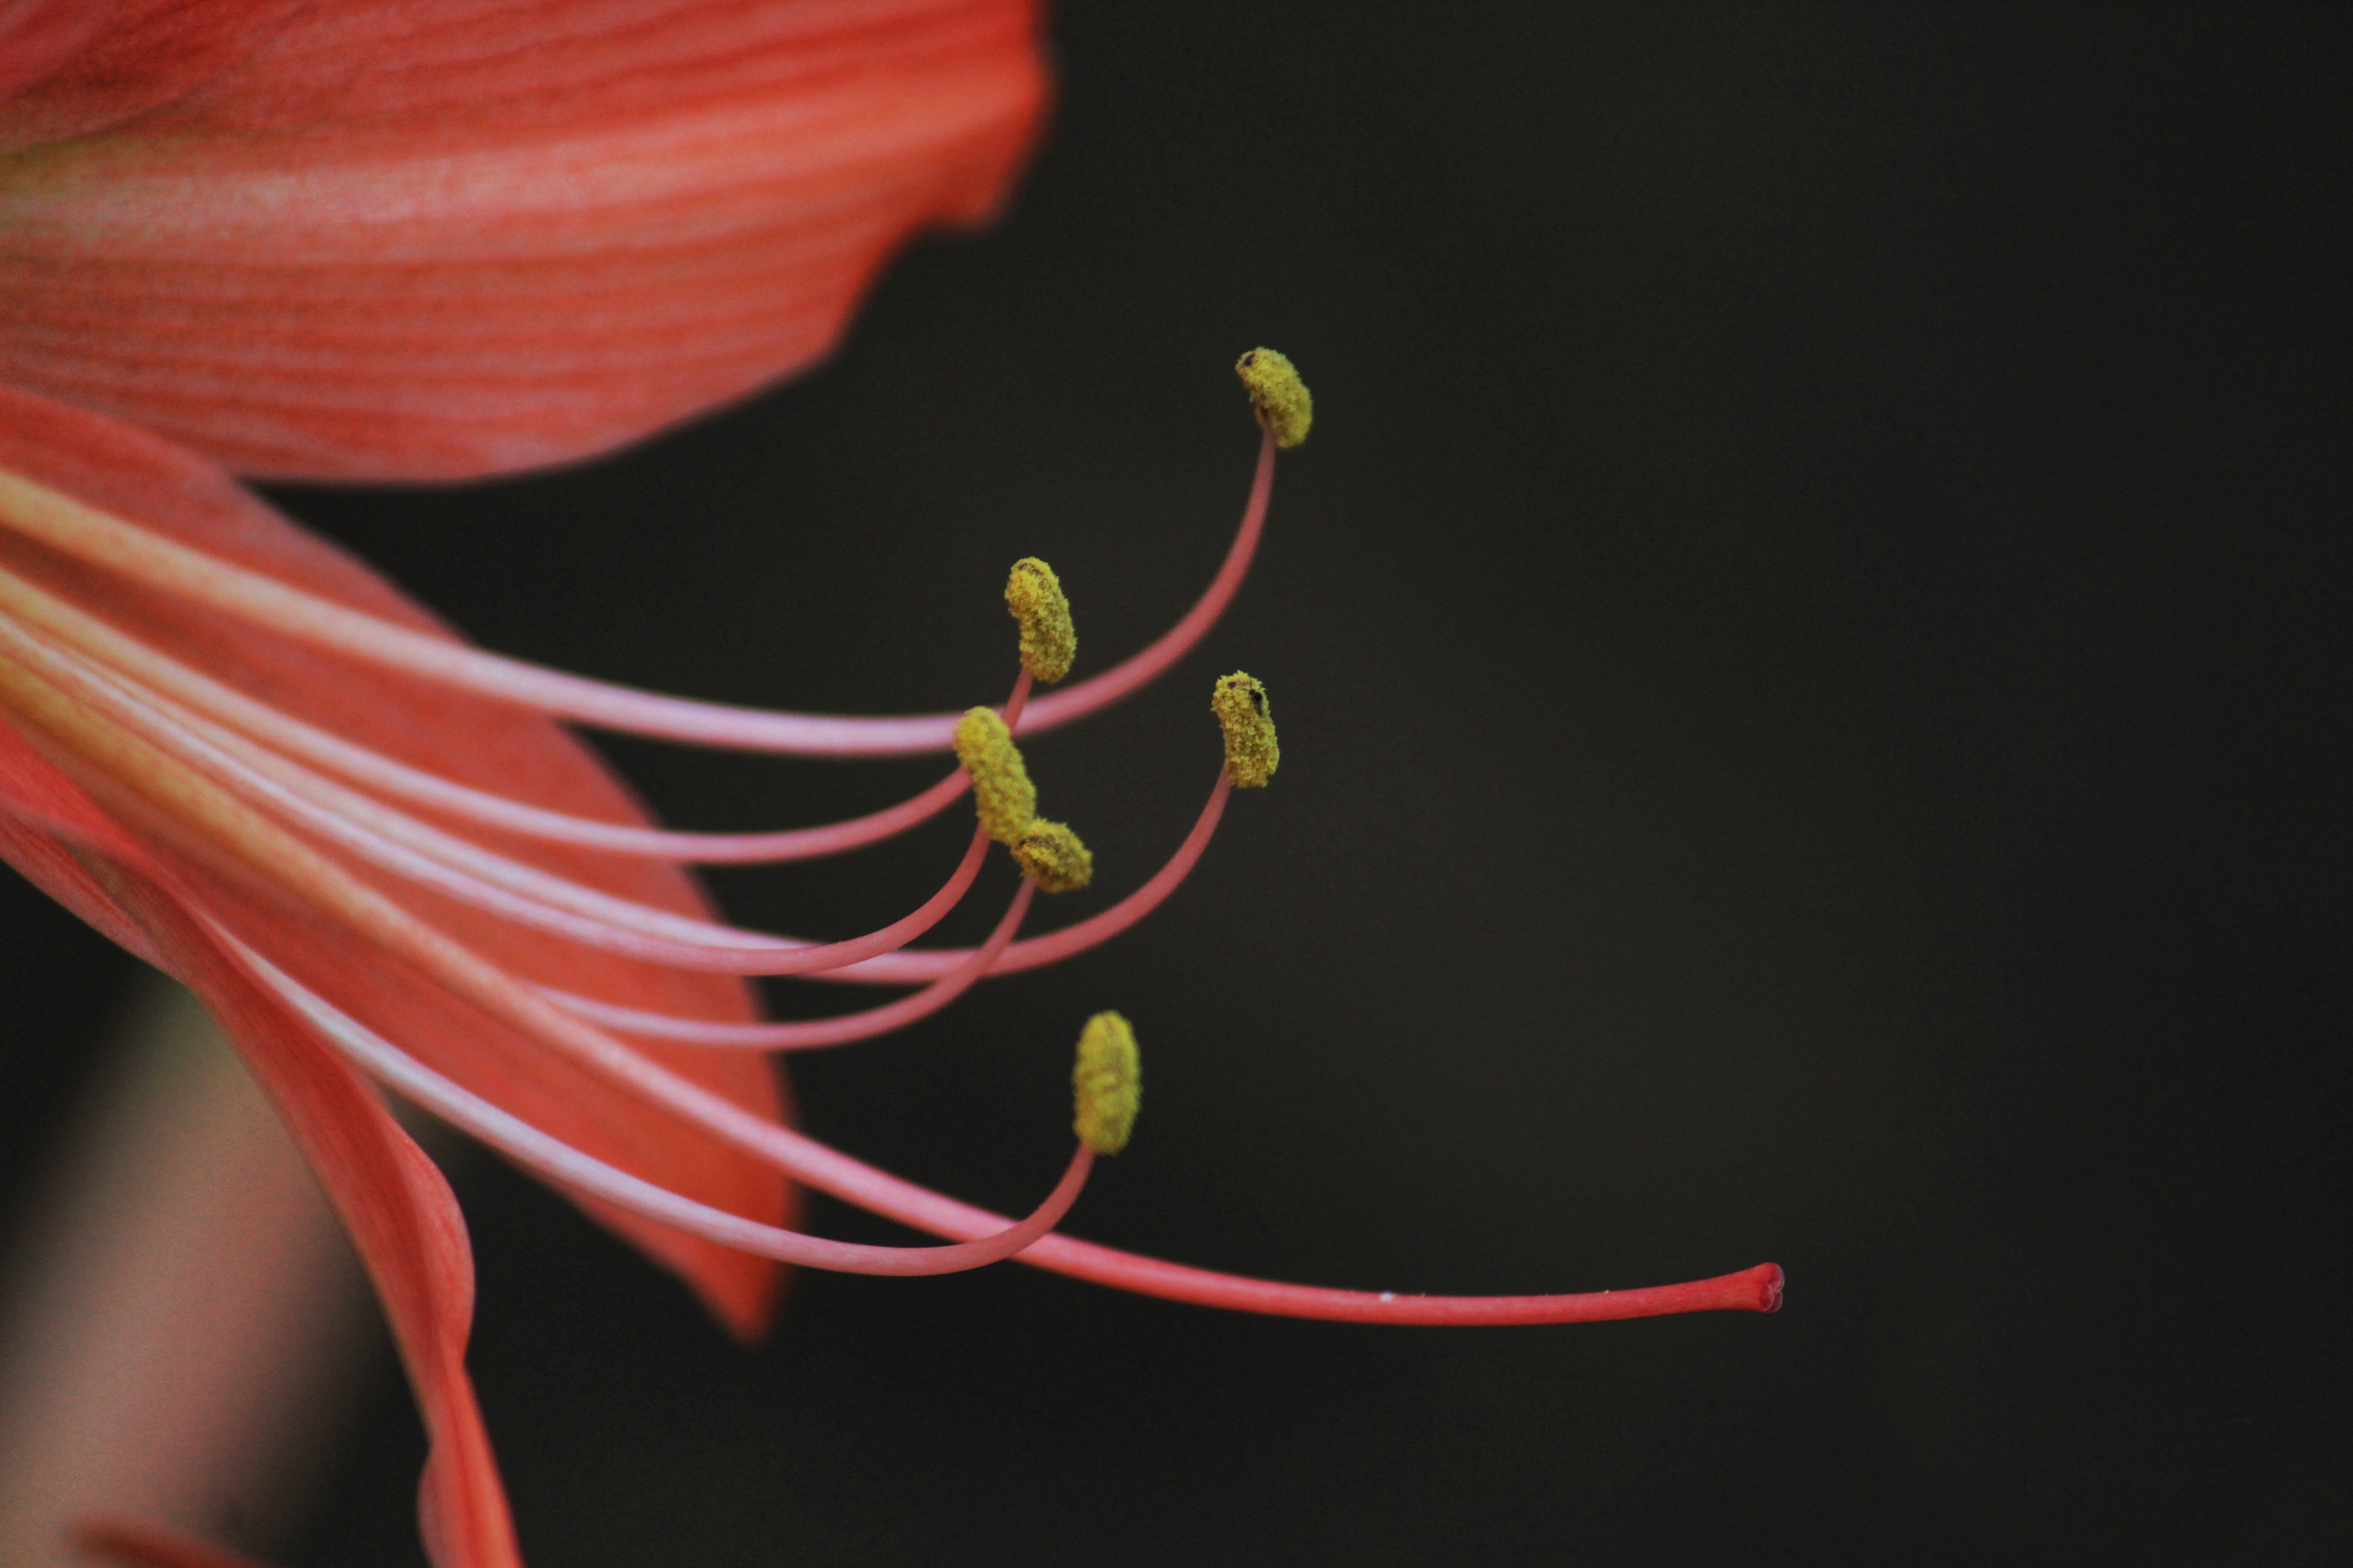 Anthers of Flower on Focus